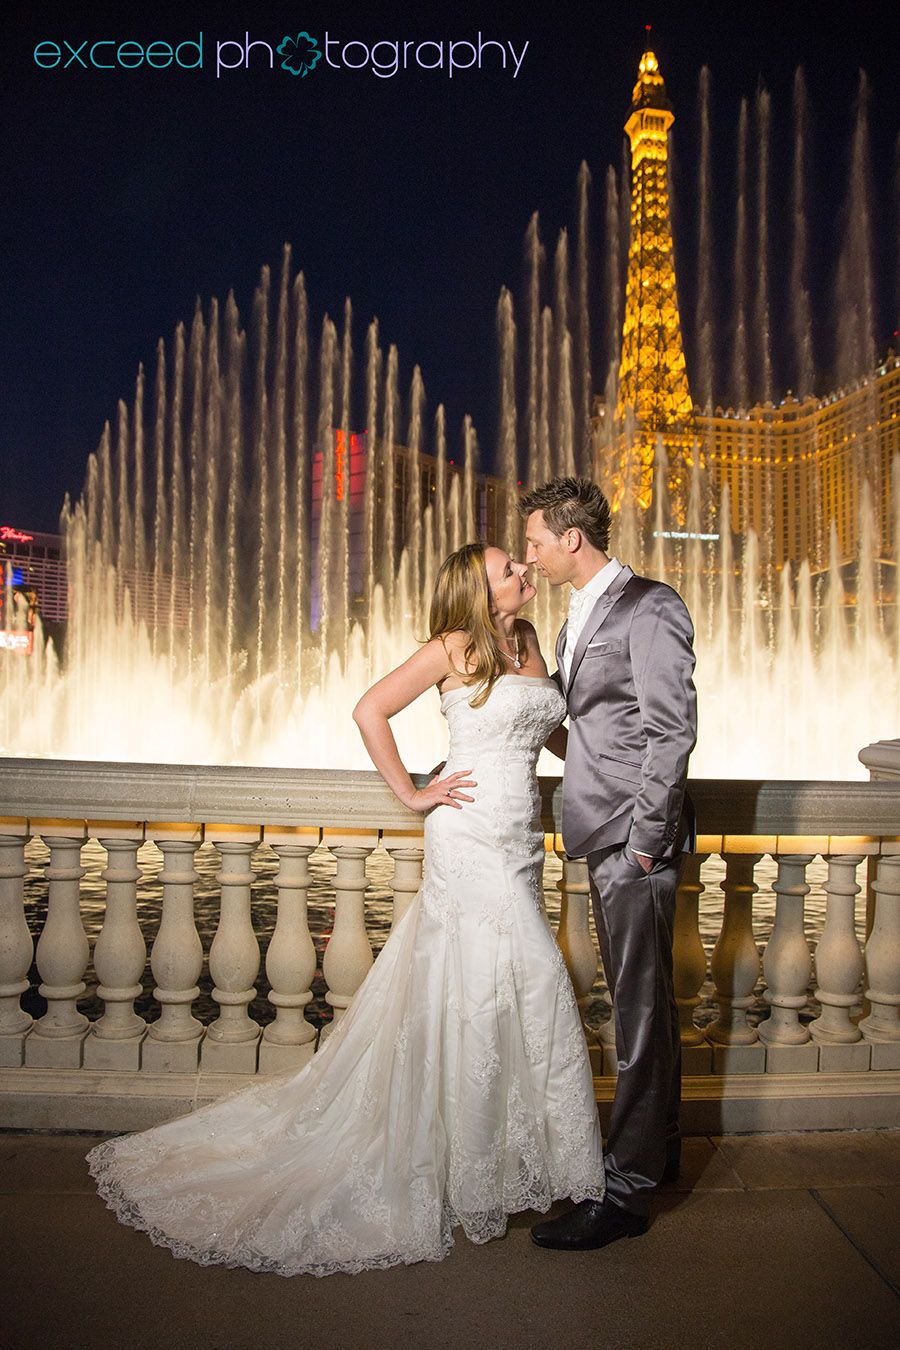 50 Off From 3 Hrs Las Vegas Strip Photo Package Wedding Tour Bellagio Fountains Exceed Photography Ideas